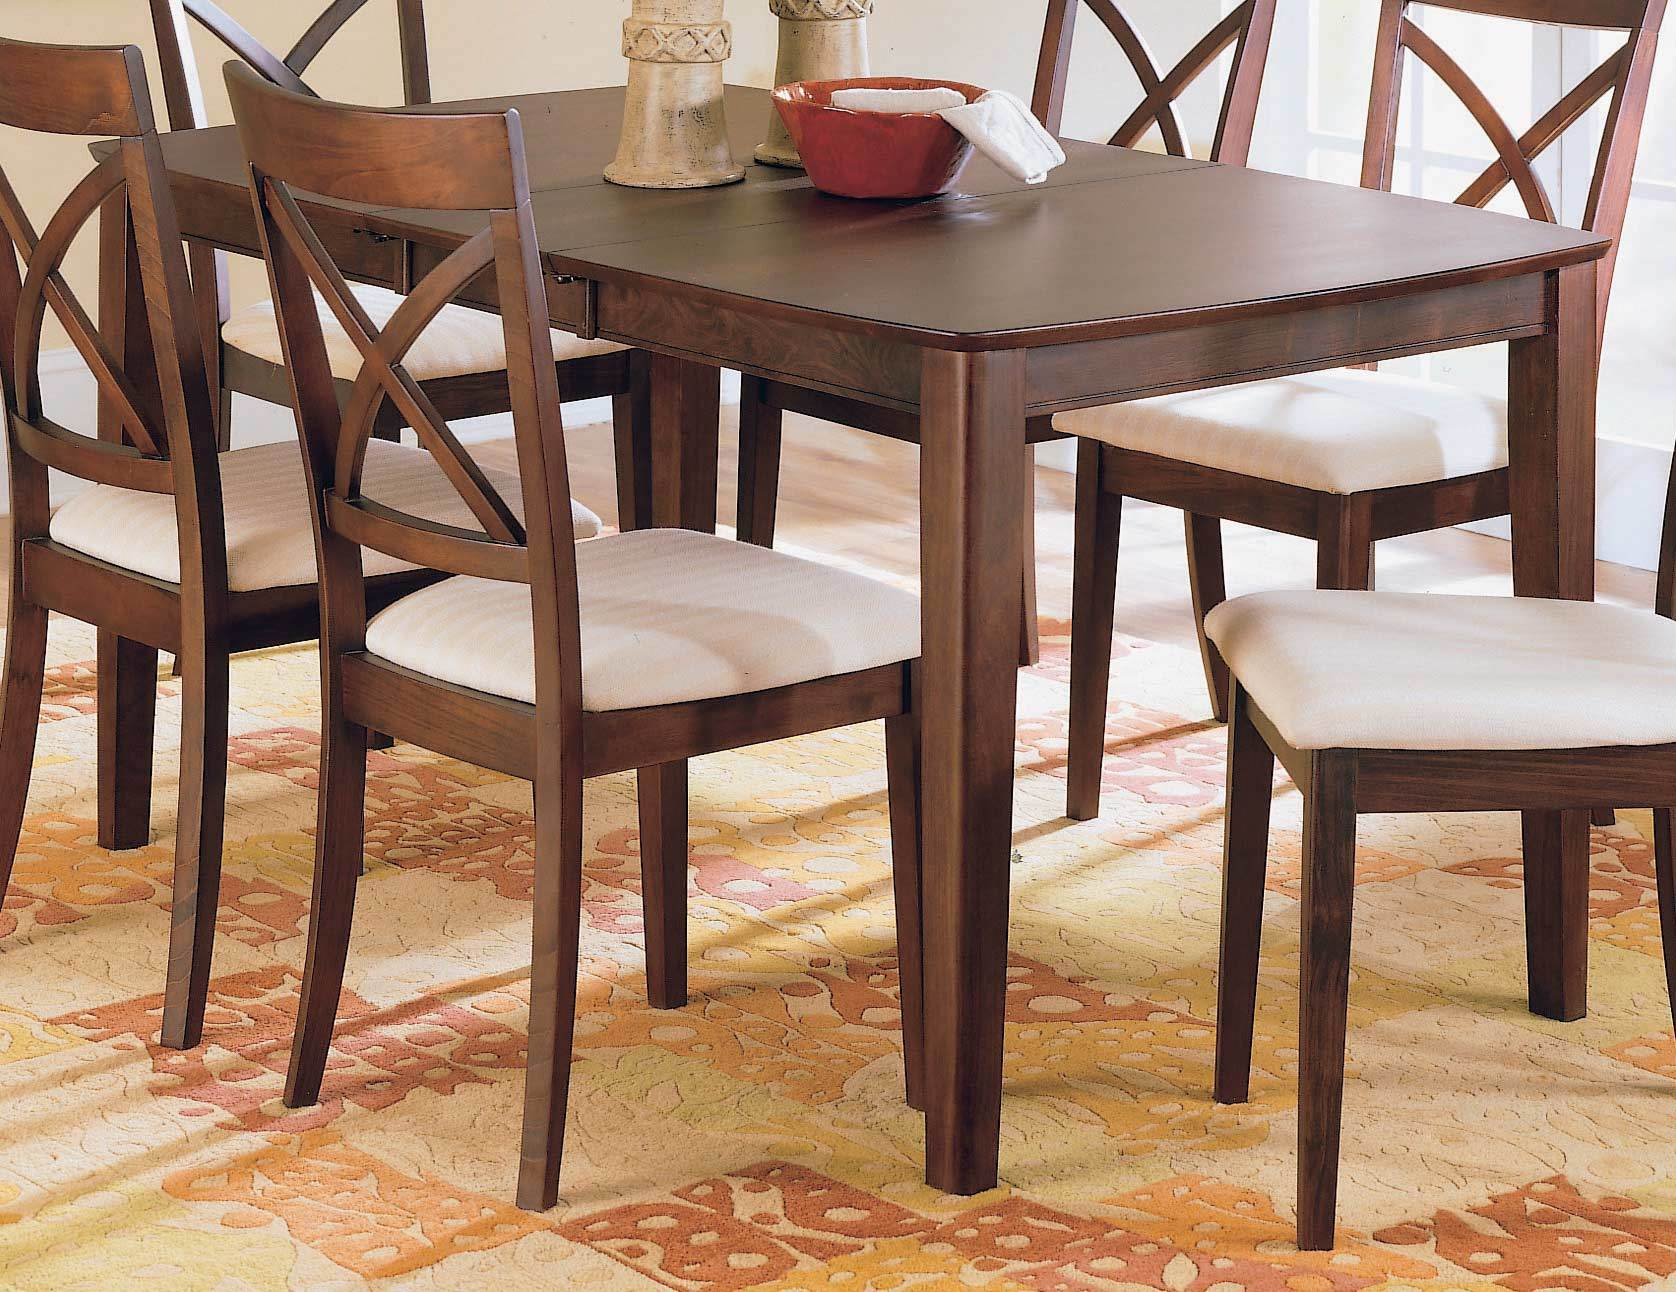 Dining table dining table and chairs thailand for Breakfast table and chairs